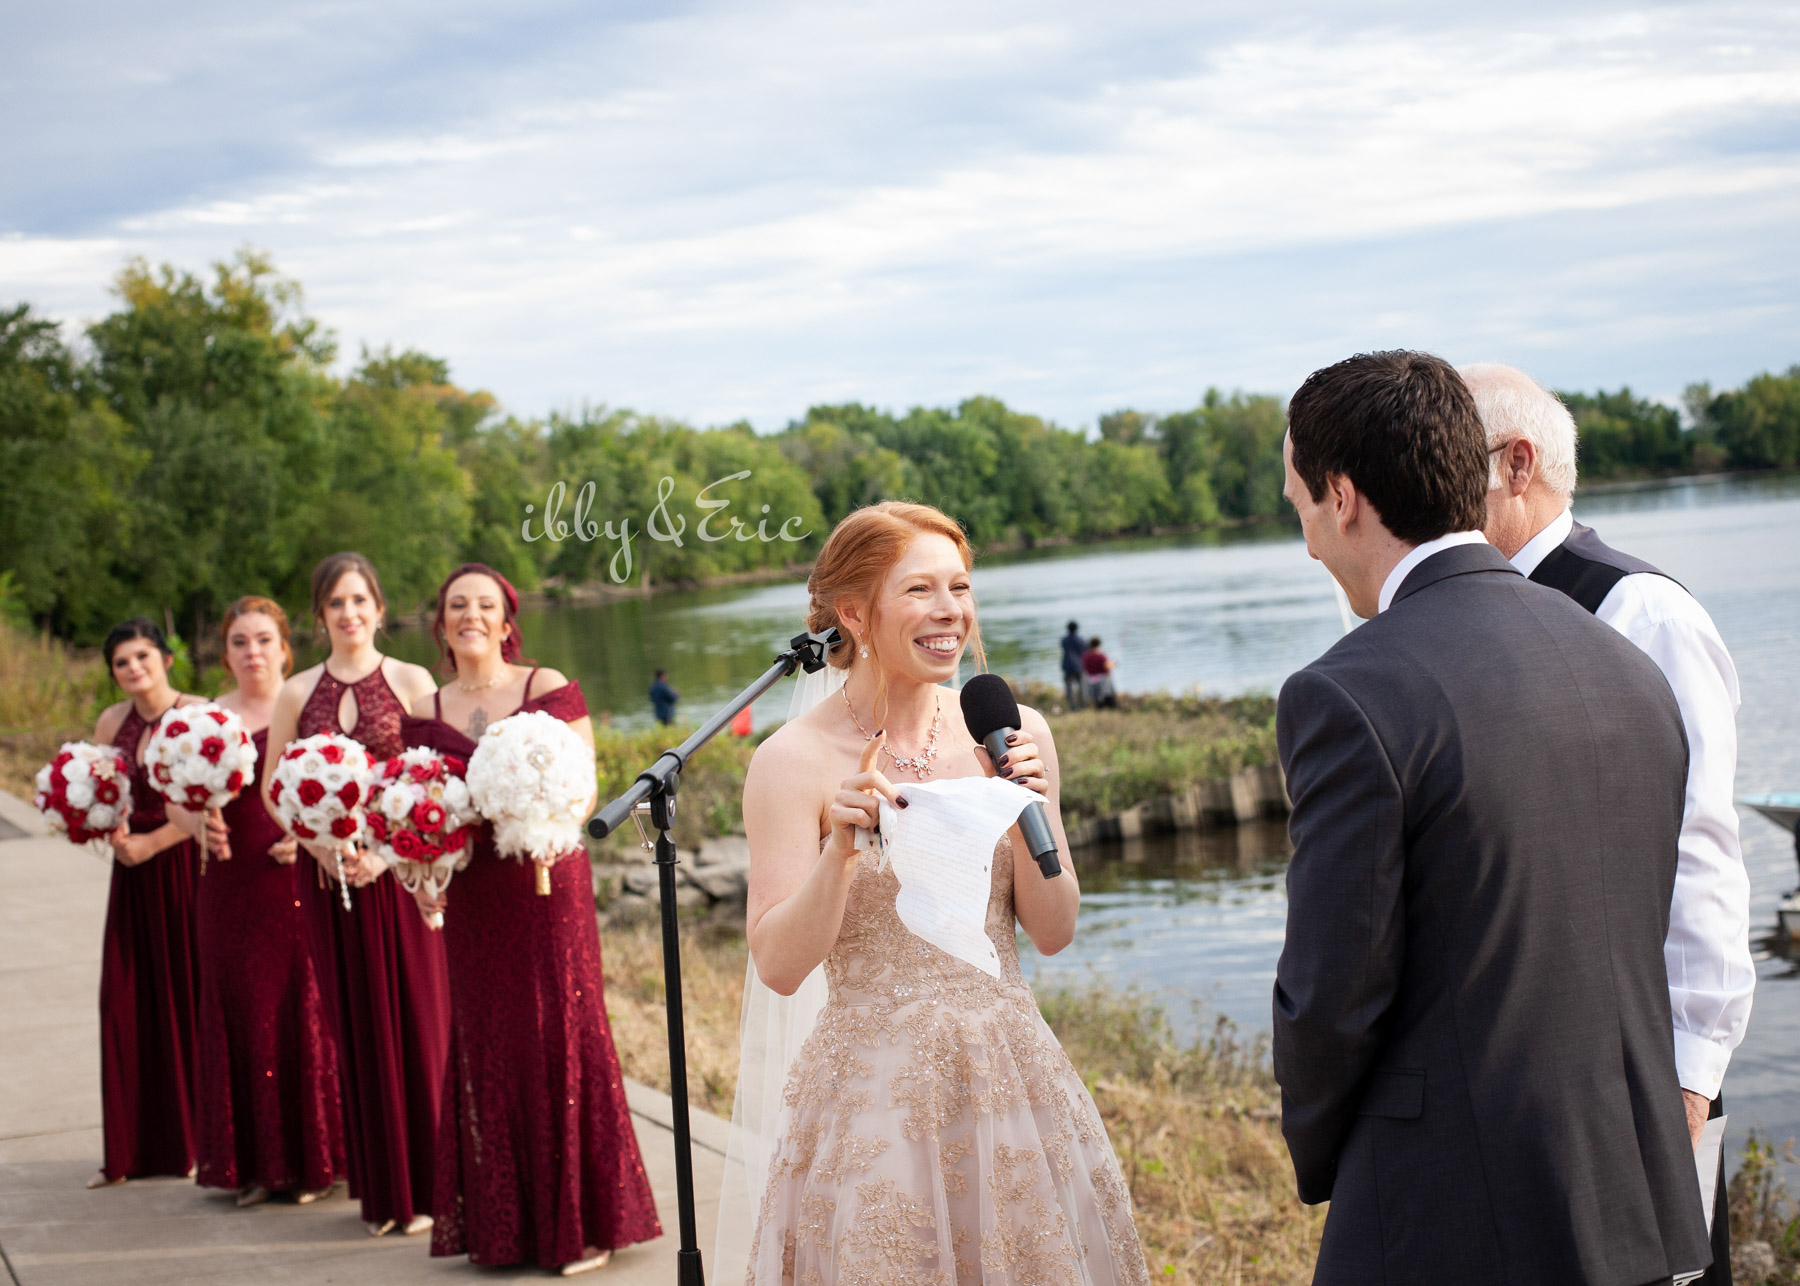 Bride smiles and laughs as she reads her wedding vows to her groom during their ceremony on the Connecticut River.